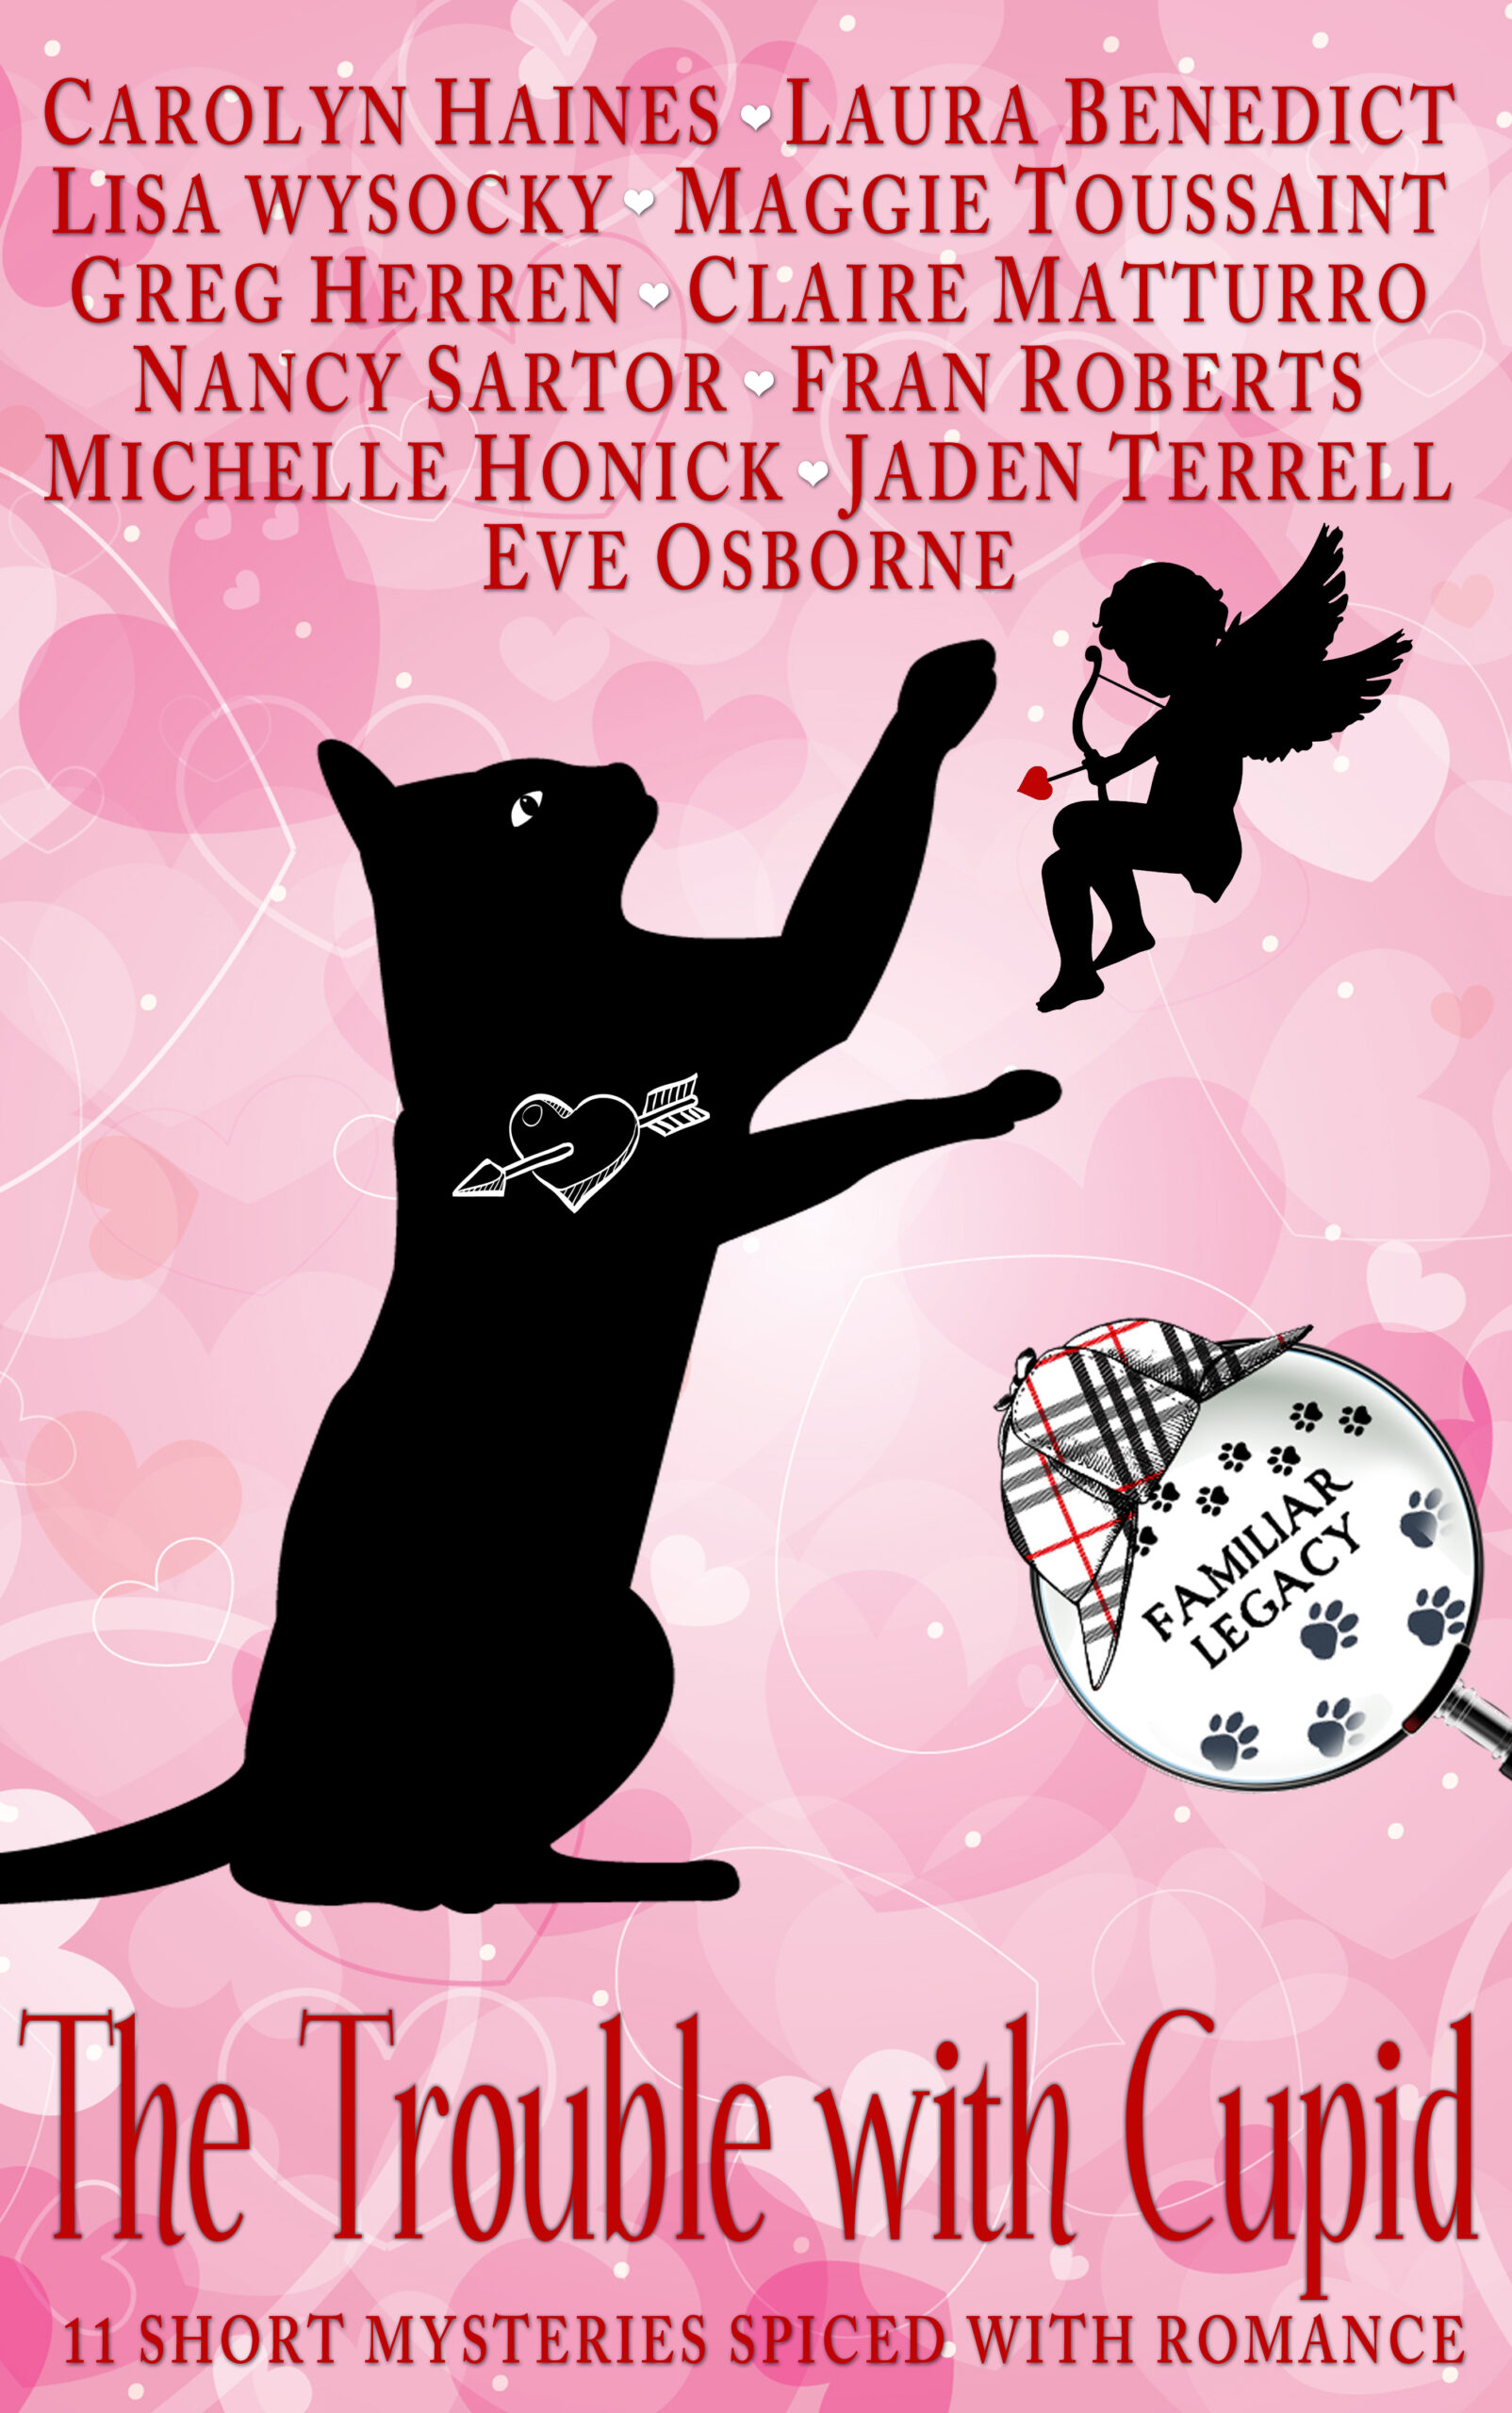 Cover of THE TROUBLE WITH CUPID, a Valentine-themed anthology.